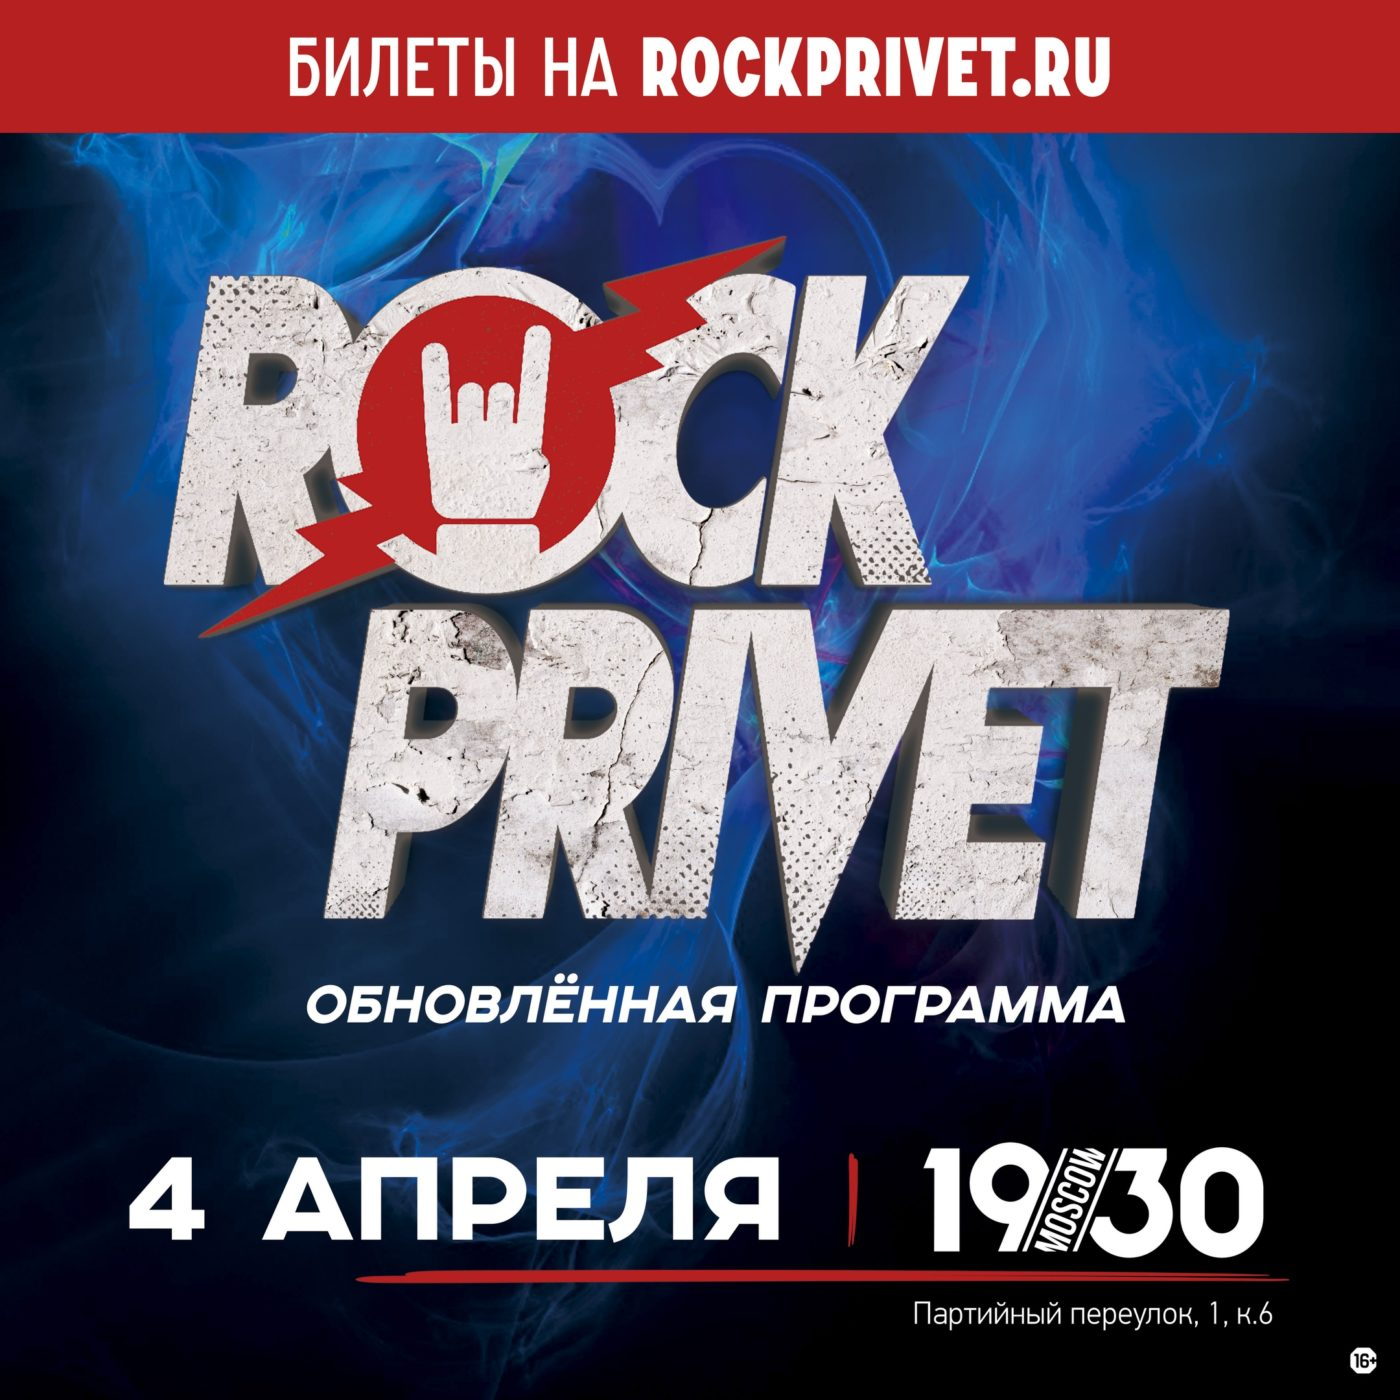 Rock Privet. 1930 Moscow. 04.03.2020